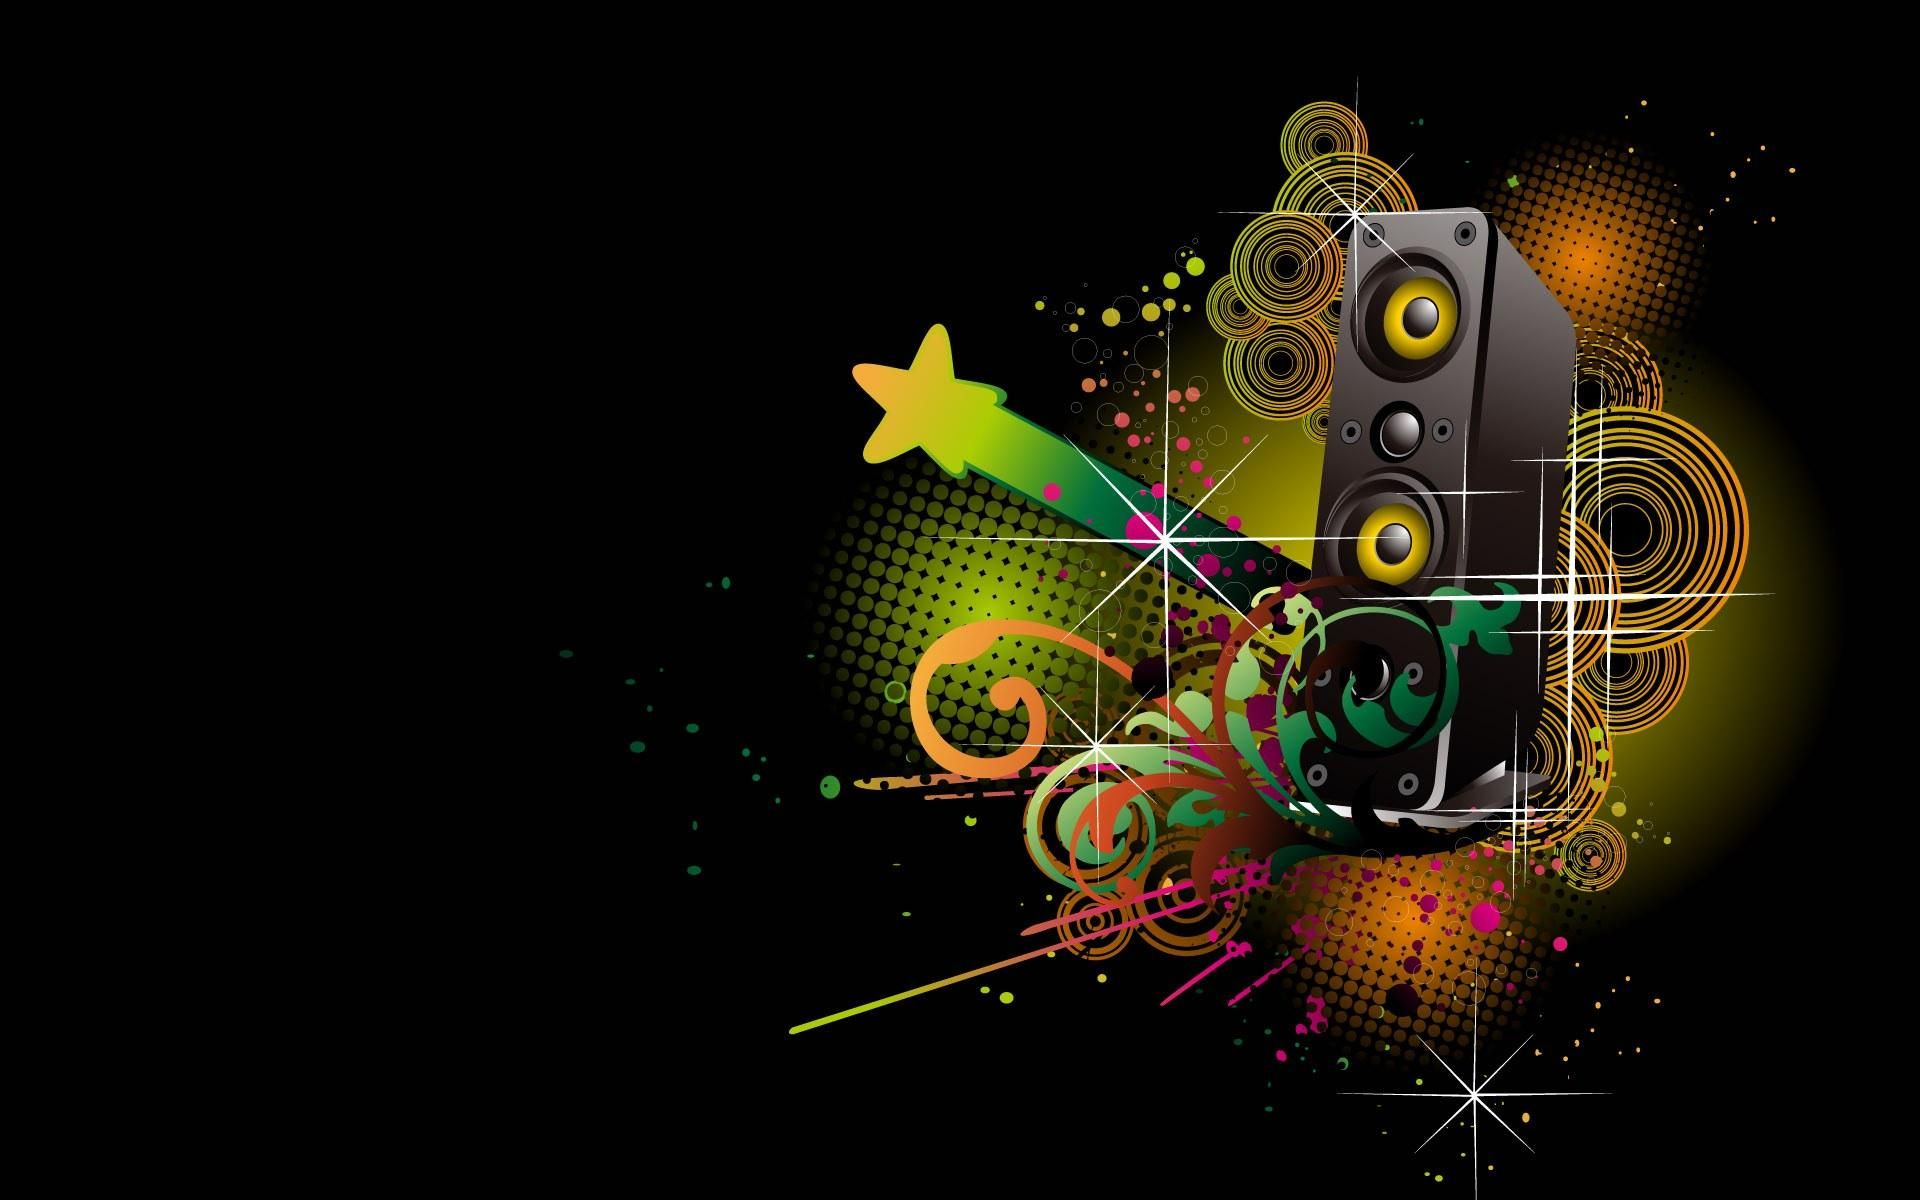 Cool Hd Music Wallpaper Desktop Equaliser Dj Backgrounds Music Wallpaper Art Wallpaper Music Backgrounds